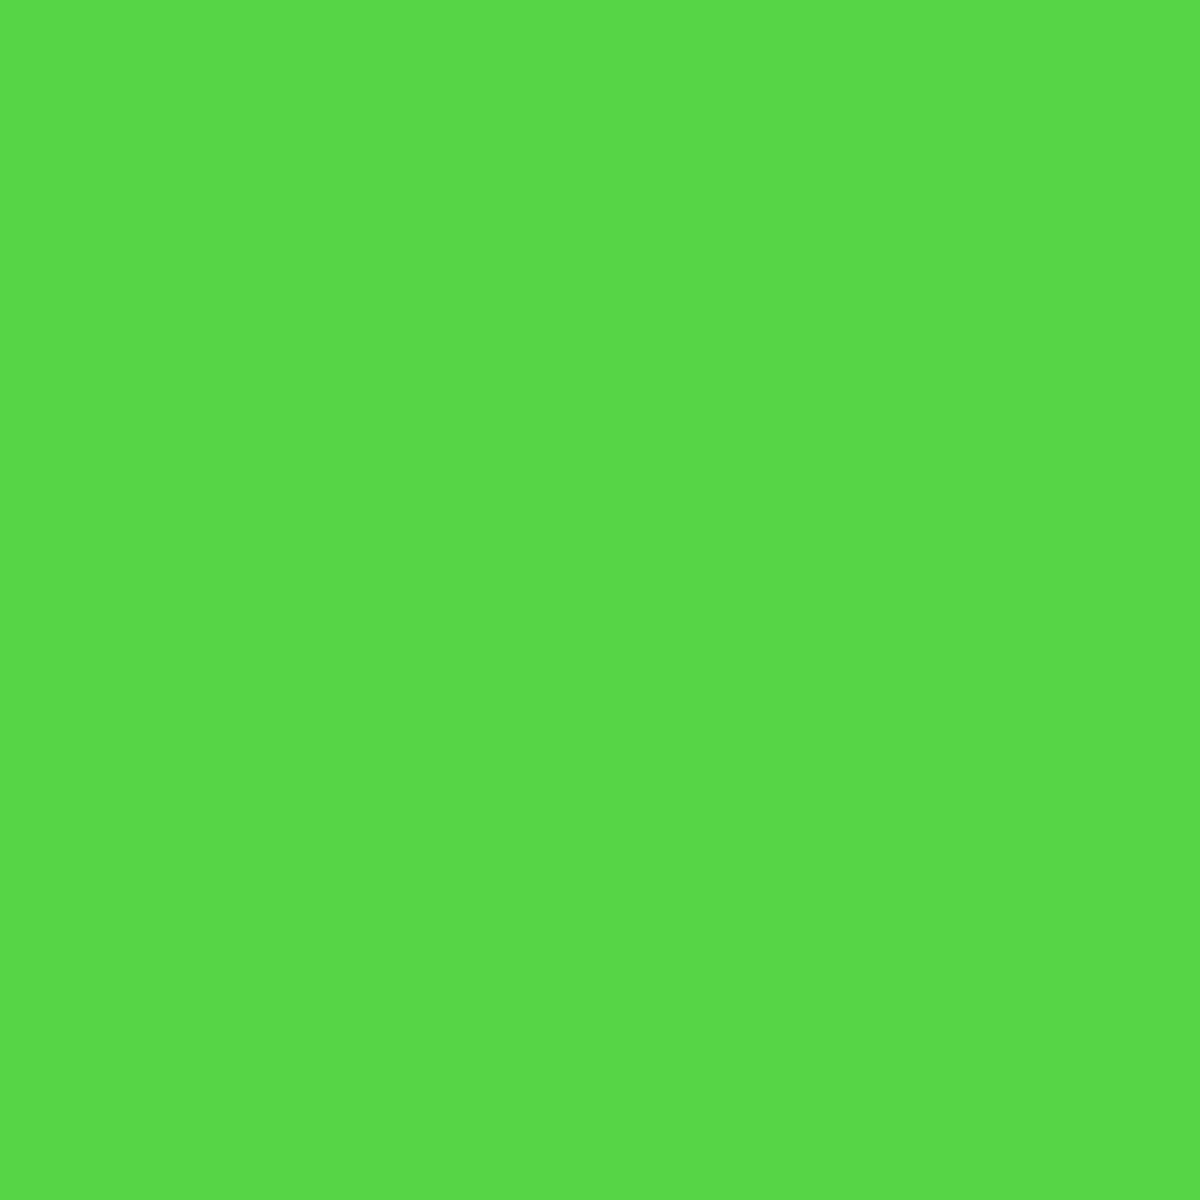 ae9cdf48259 Prism Backdrops by Ravelli 10x20  (9x18  after pre-shrinkage) Chromakey Green  Muslin Photo Video Backdrop Background 100% Cotton